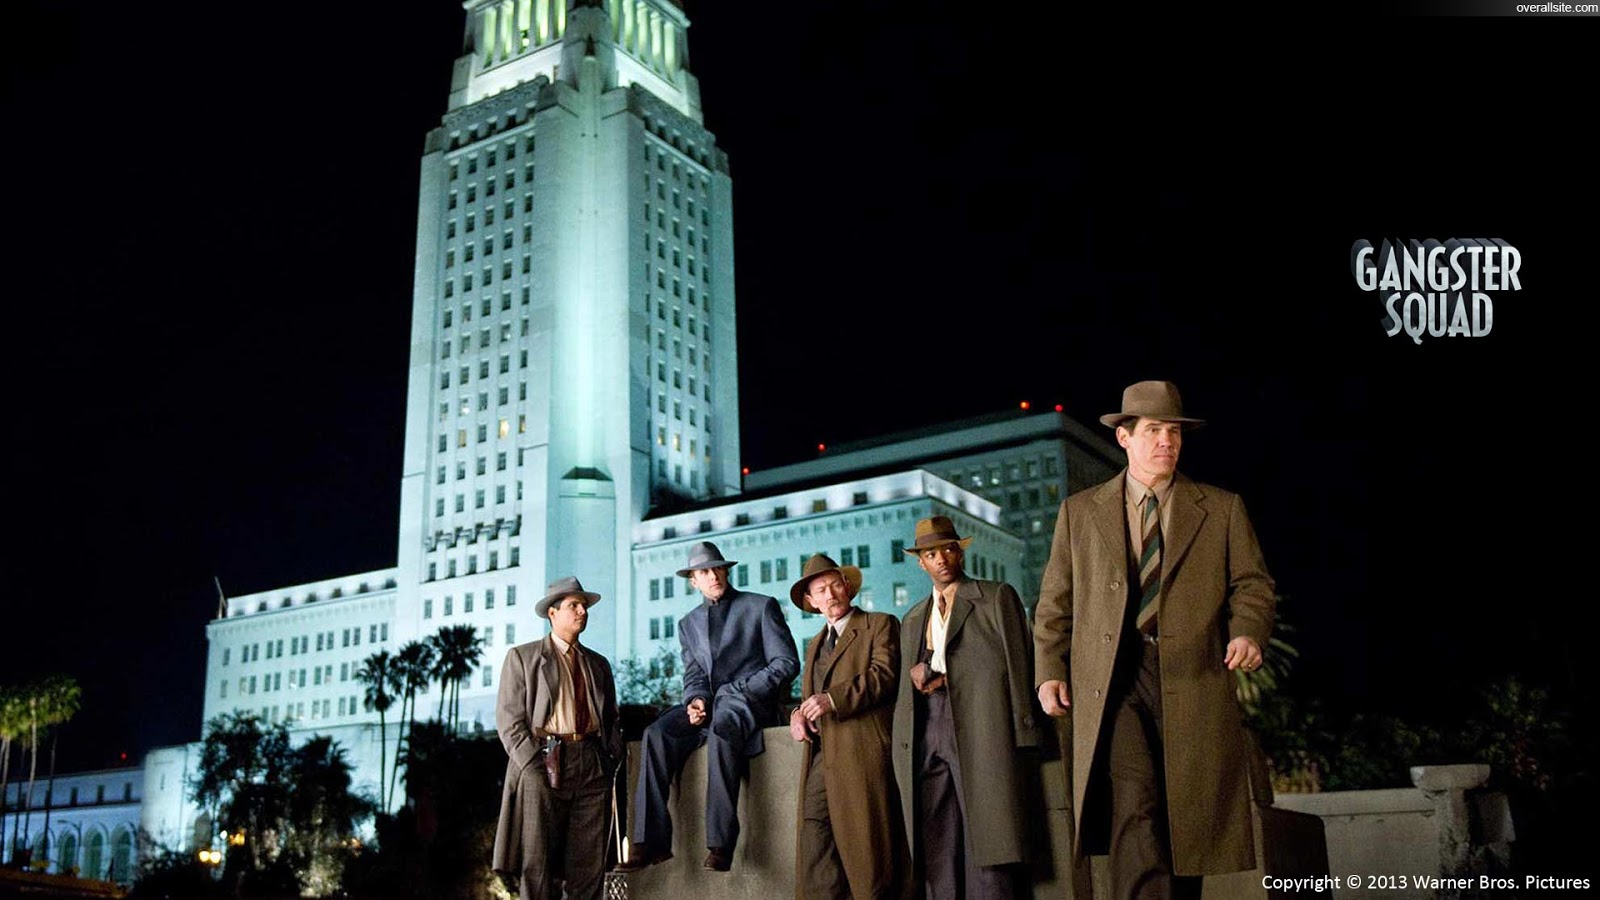 Wallpapers Gangster Squad   Everything about PowerPoint Wallpapers 1600x900